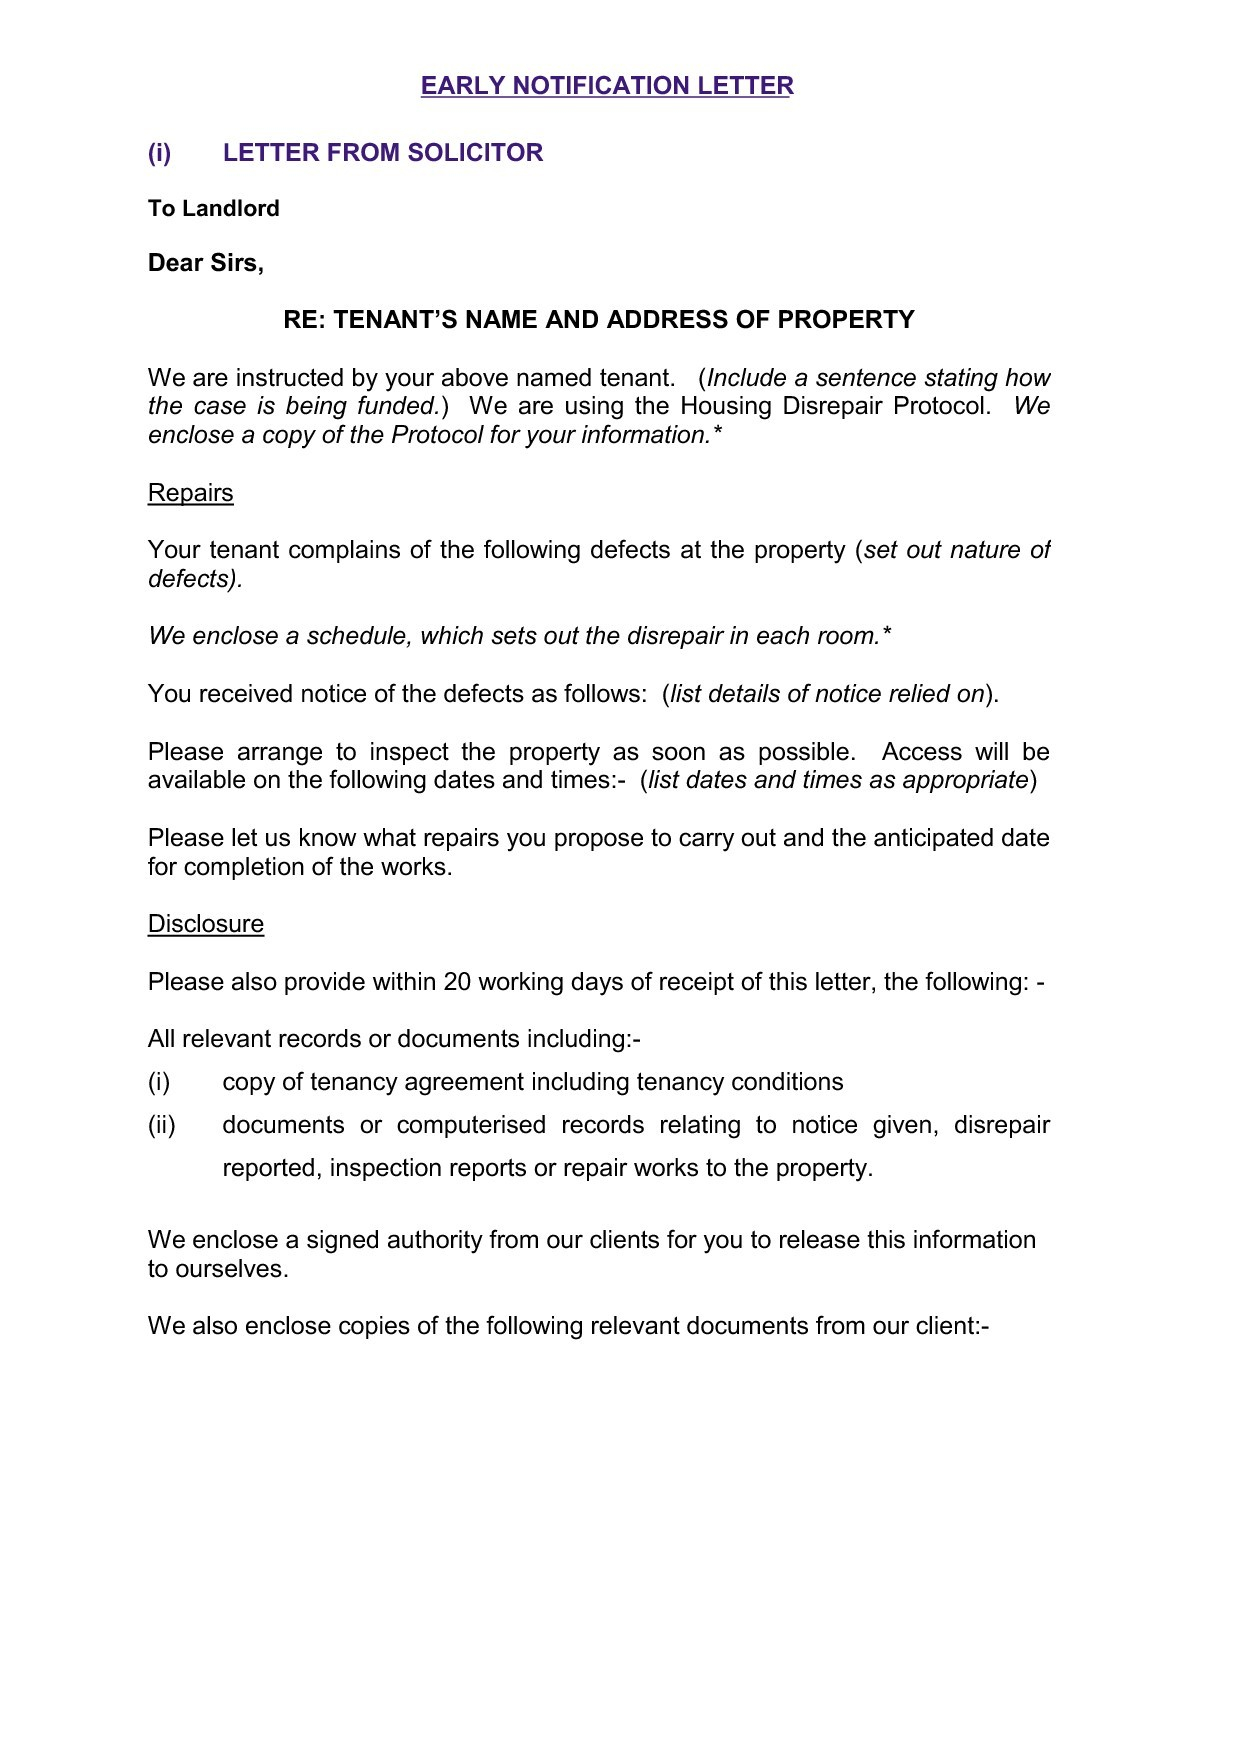 routine inspection letter to tenant template example-Property Inspection Letter to Tenant Uk Archives New Property Inspection Letter to Tenant Uk Archives Codeshaker 8-t